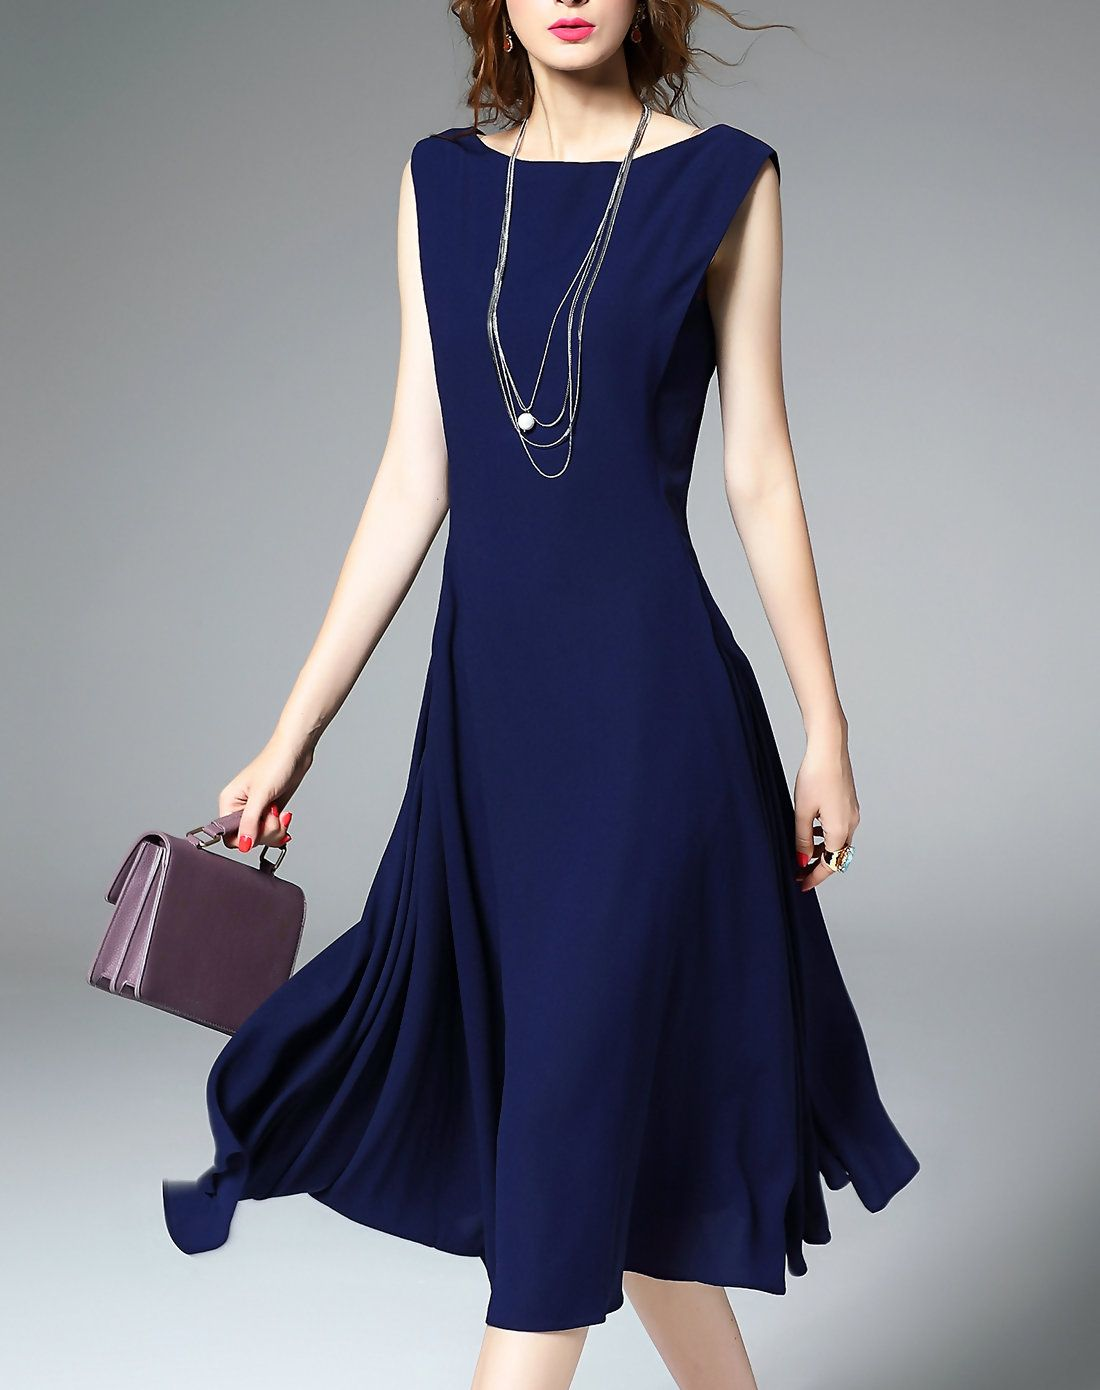 96d05f0896a6  AdoreWe  VIPme Skater Dresses - YEARNSANE Blue Bateau Neckline Fit   Flare Midi  Dress